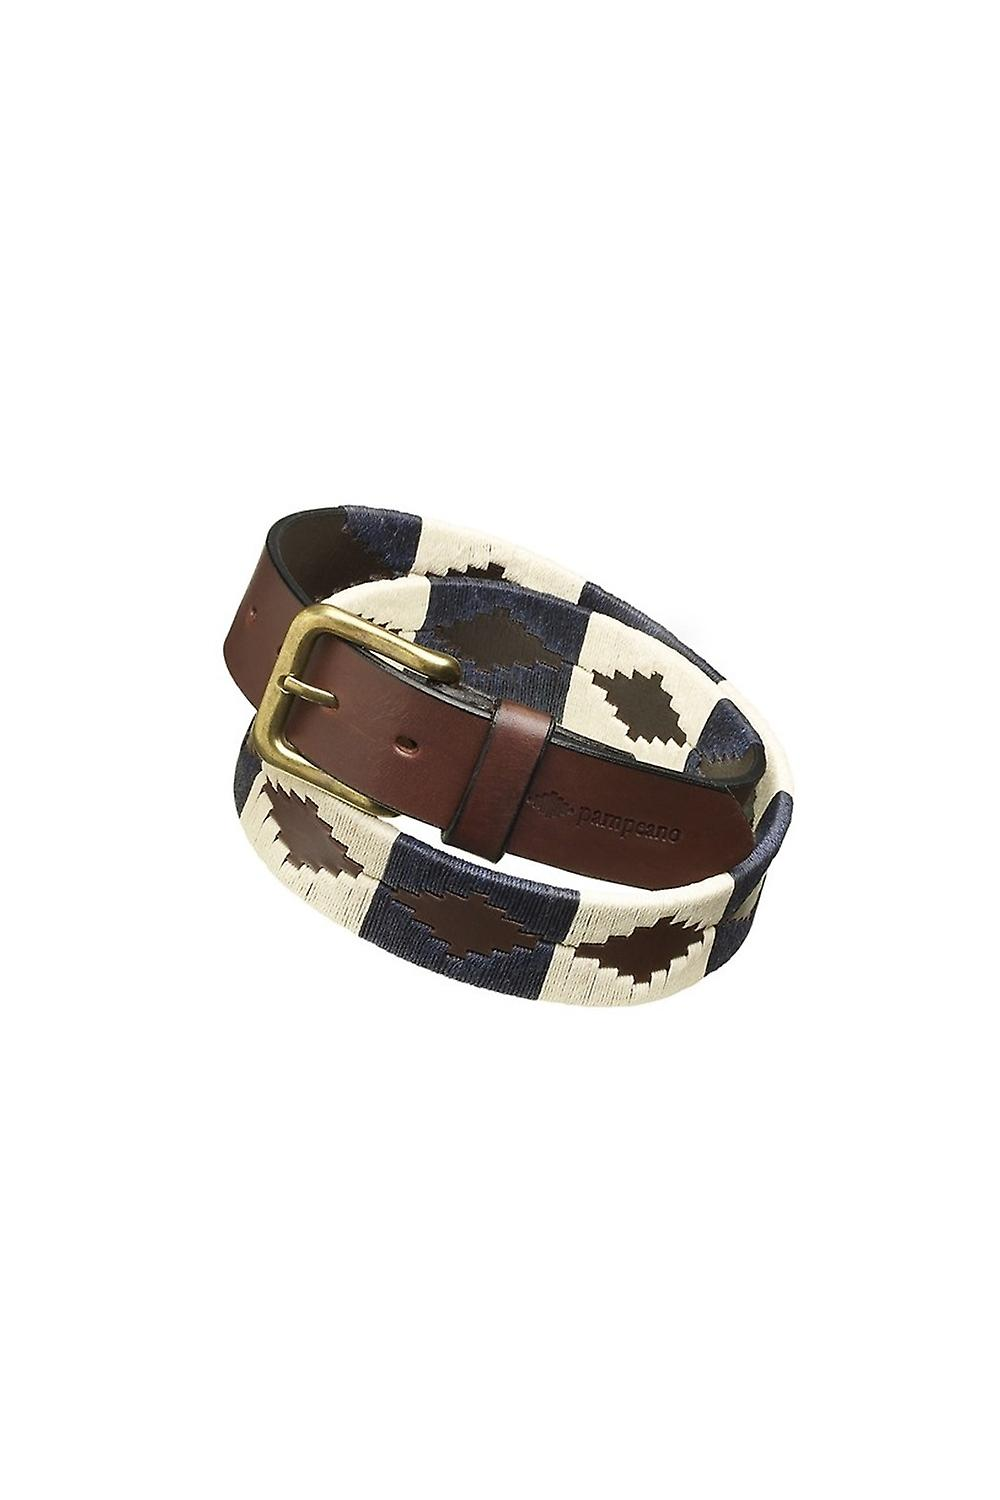 Pampeano Jugador Leather Polo Belt Navy & Cream